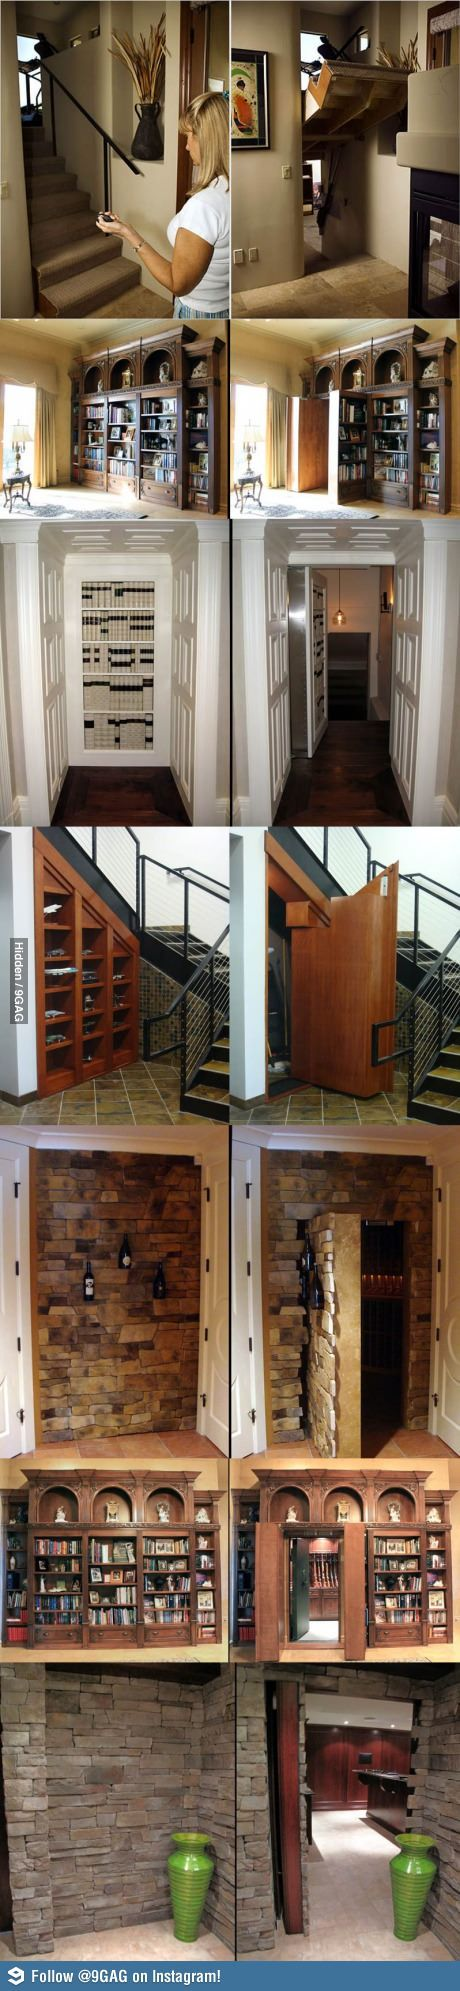 best ideas for the house images by derrika wright on pinterest